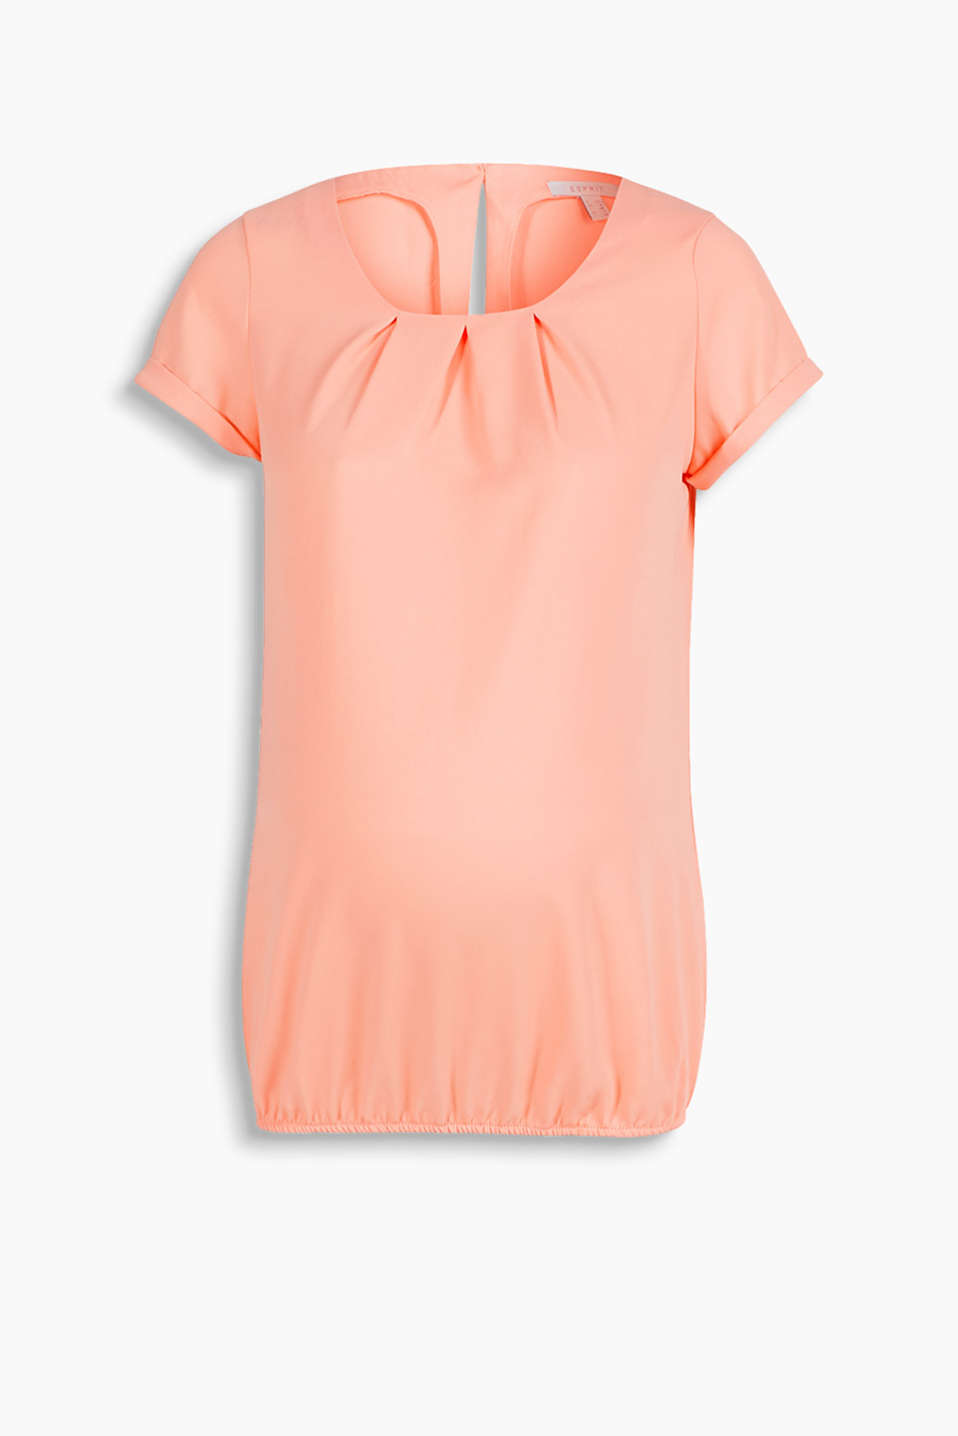 in a loose form, with an elasticated hem and a pleated neckline